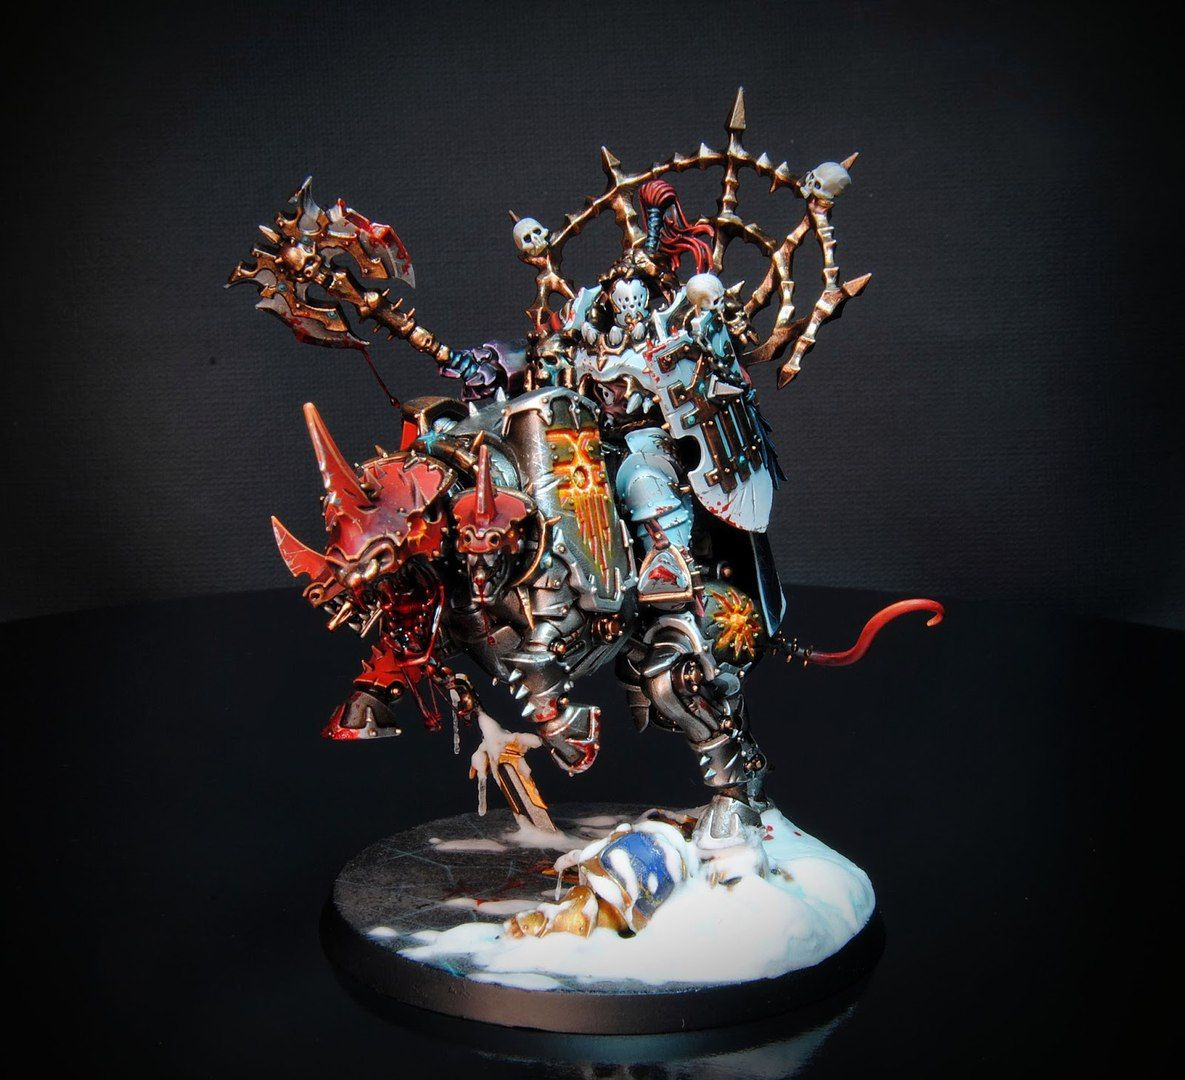 Peindre Decor Warhammer Age Of Sigmar Khorne Bloodbound Khorne Lord On Juggernauth